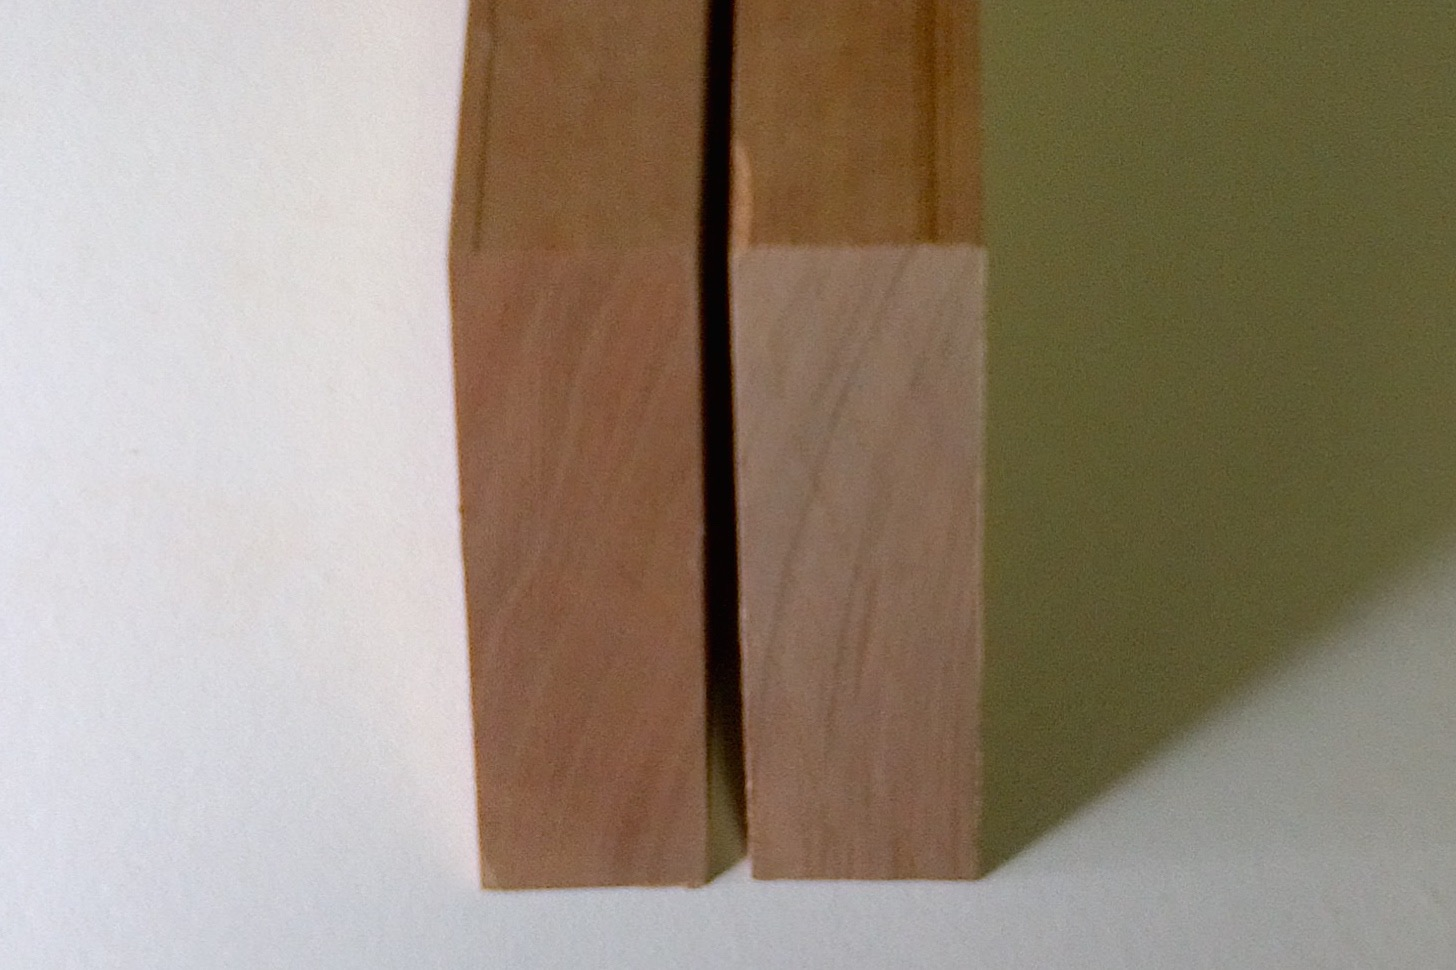 Examples of cuts